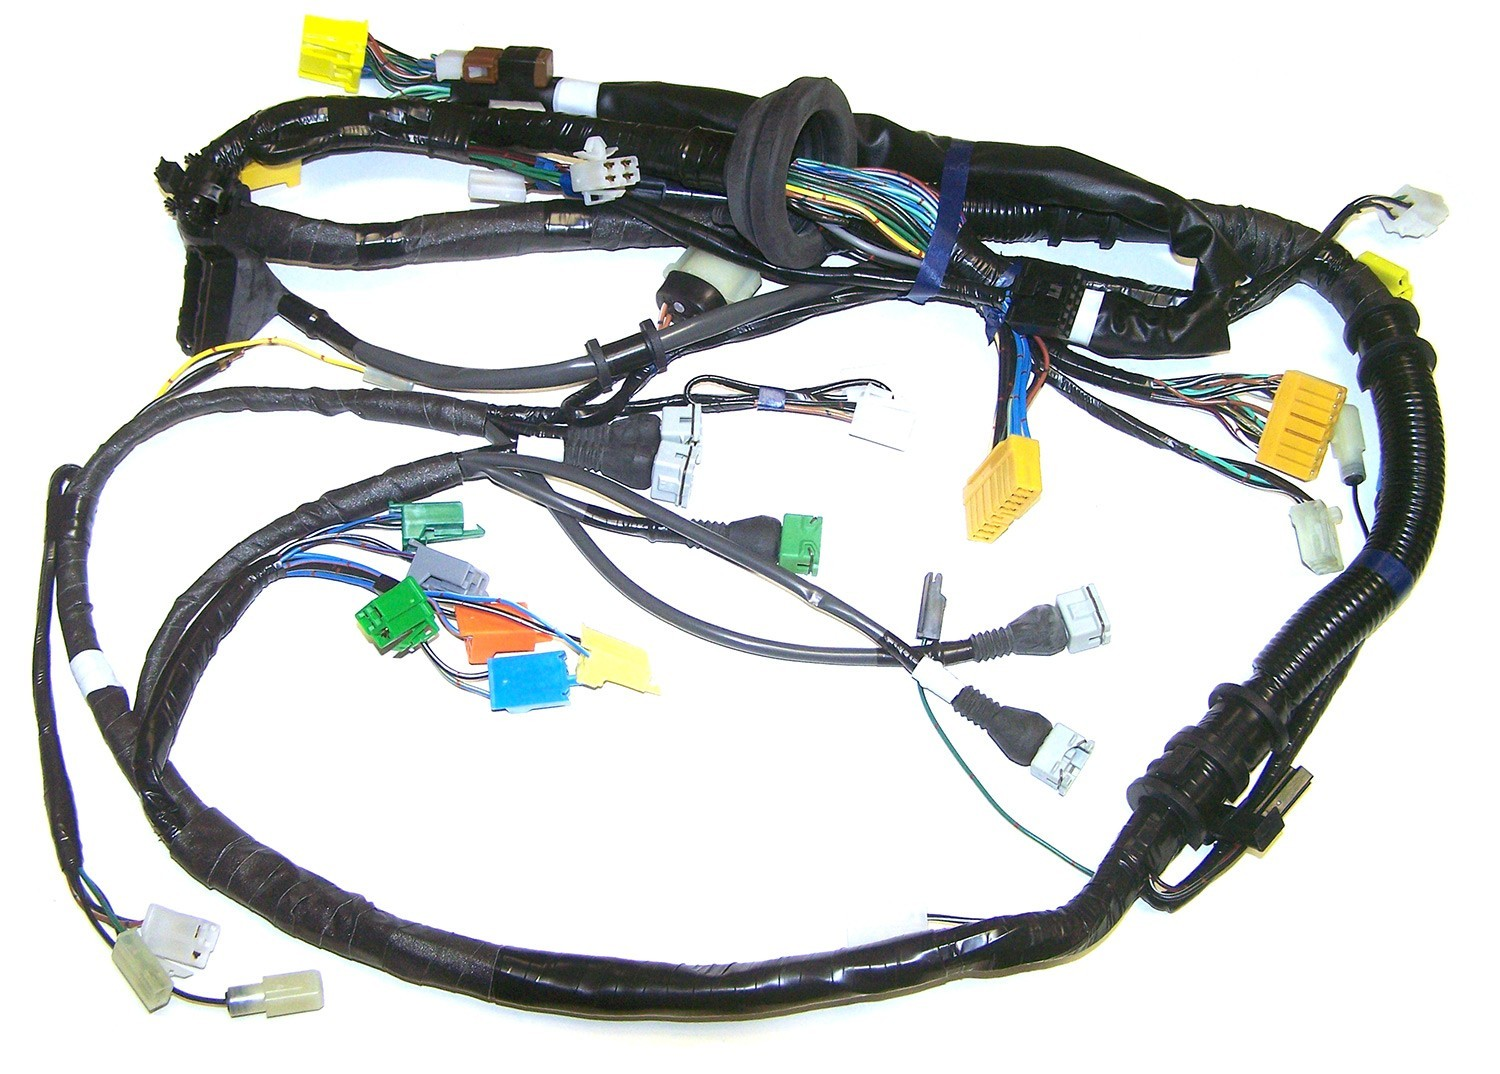 N332 18 051KDetail 87 88 turbo rx7 engine wiring harness (n332 18 051k) engine wiring harness at mifinder.co